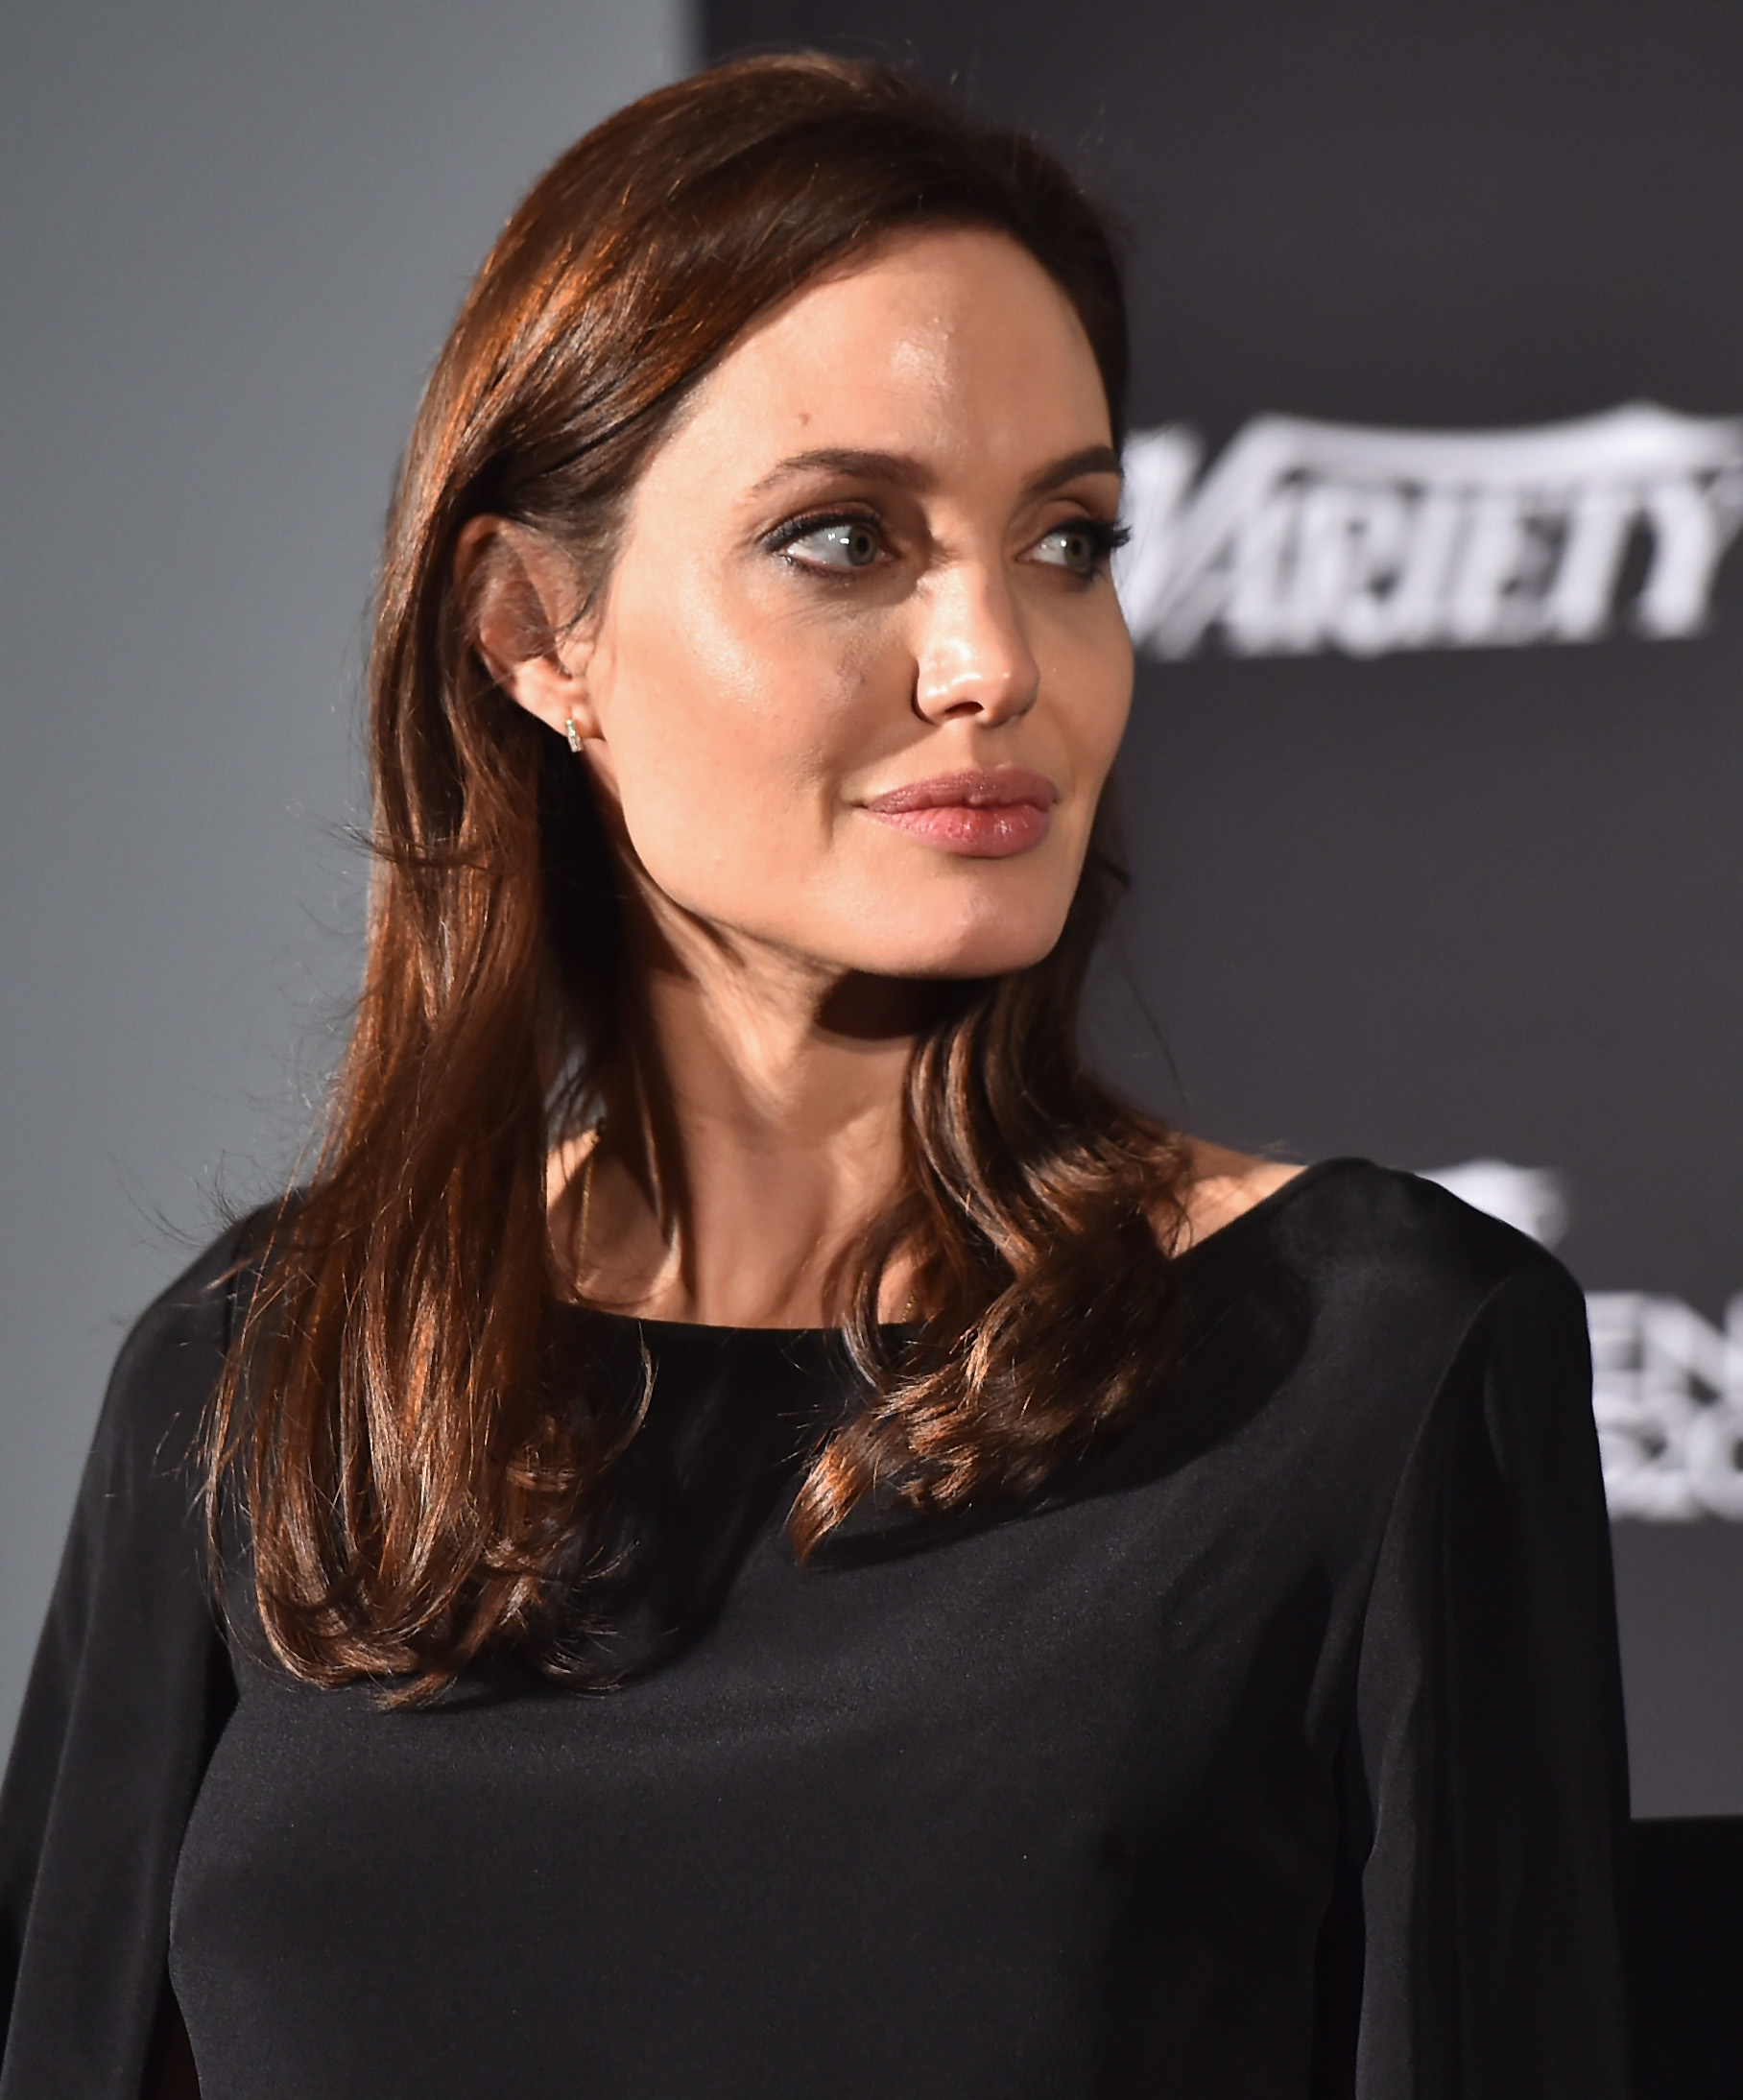 Executive producer Angelina Jolie attends the 2014 Variety Screening Series of  Difret   at ArcLight Hollywood on December 9, 2014 in Hollywood, California.